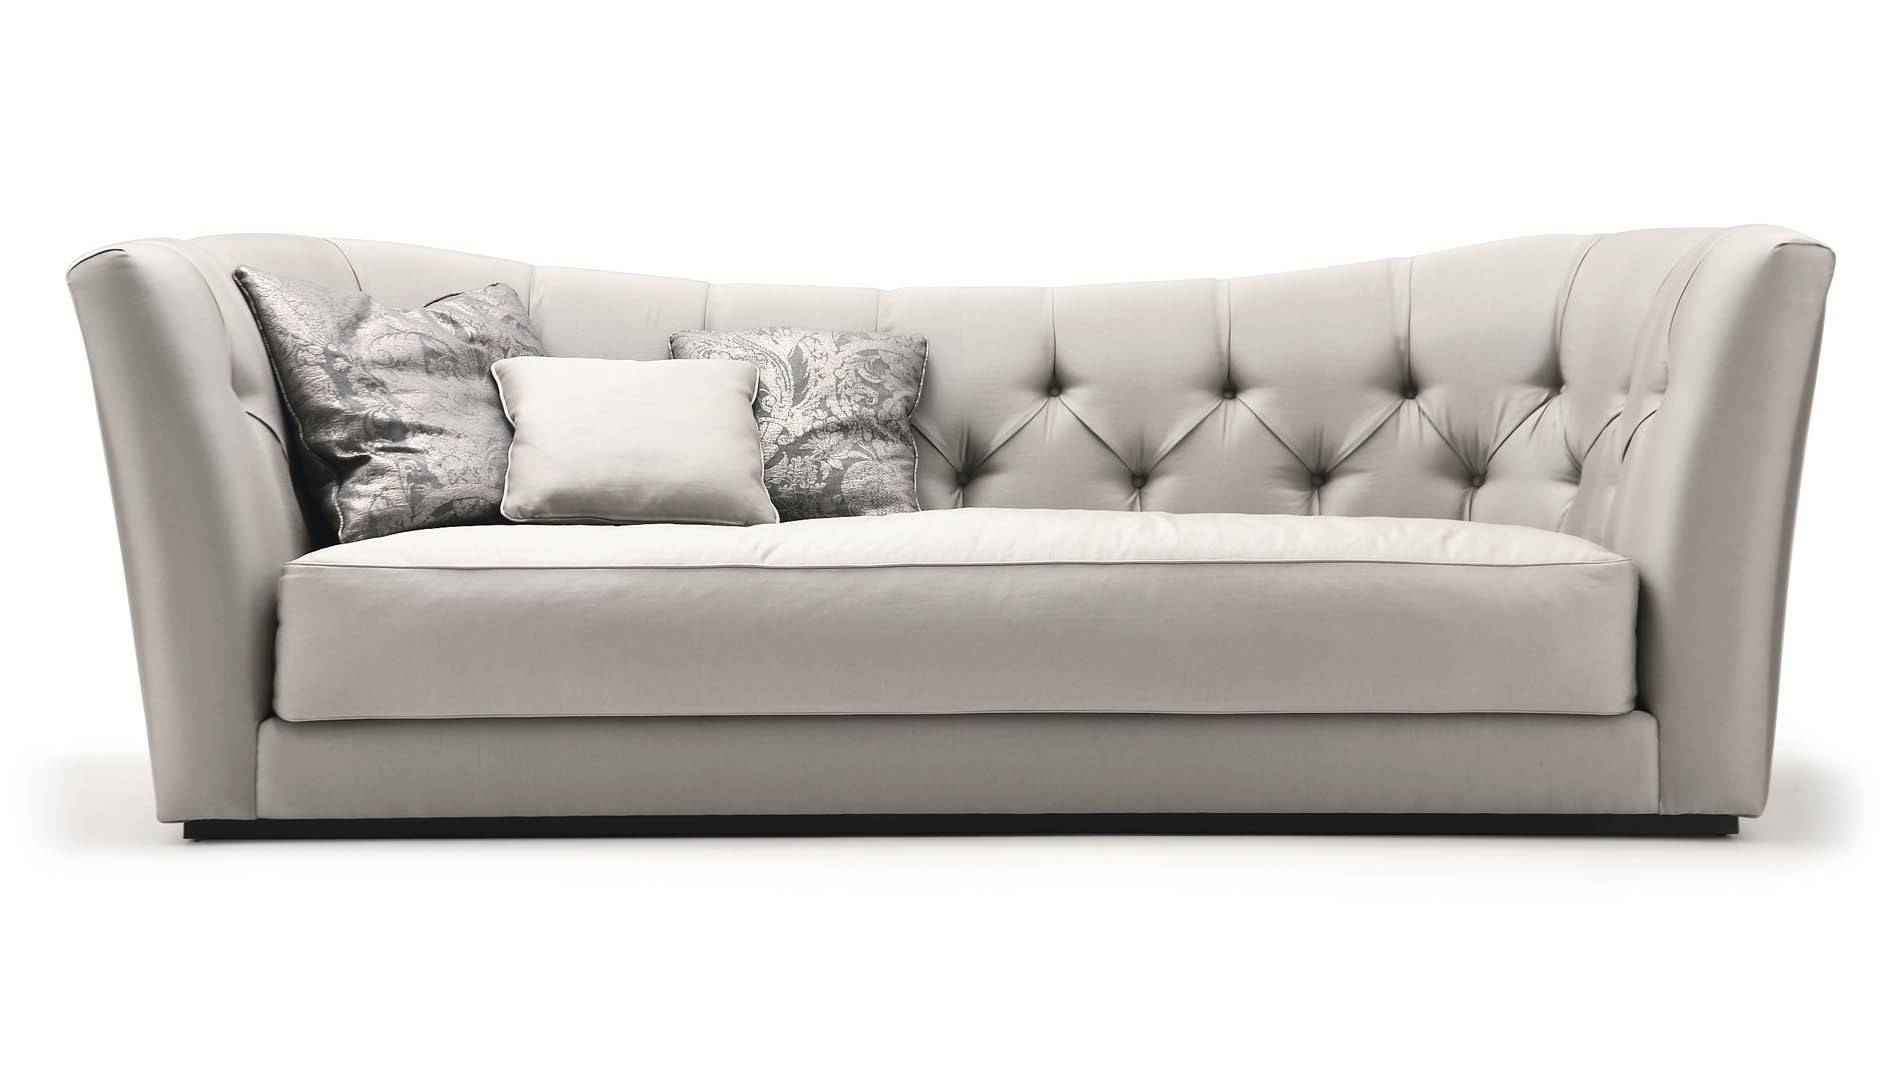 Contemporary, Butterfly 3-Seater Sofa , Buy Online At Luxdeco regarding Modern 3 Seater Sofas (Image 7 of 30)